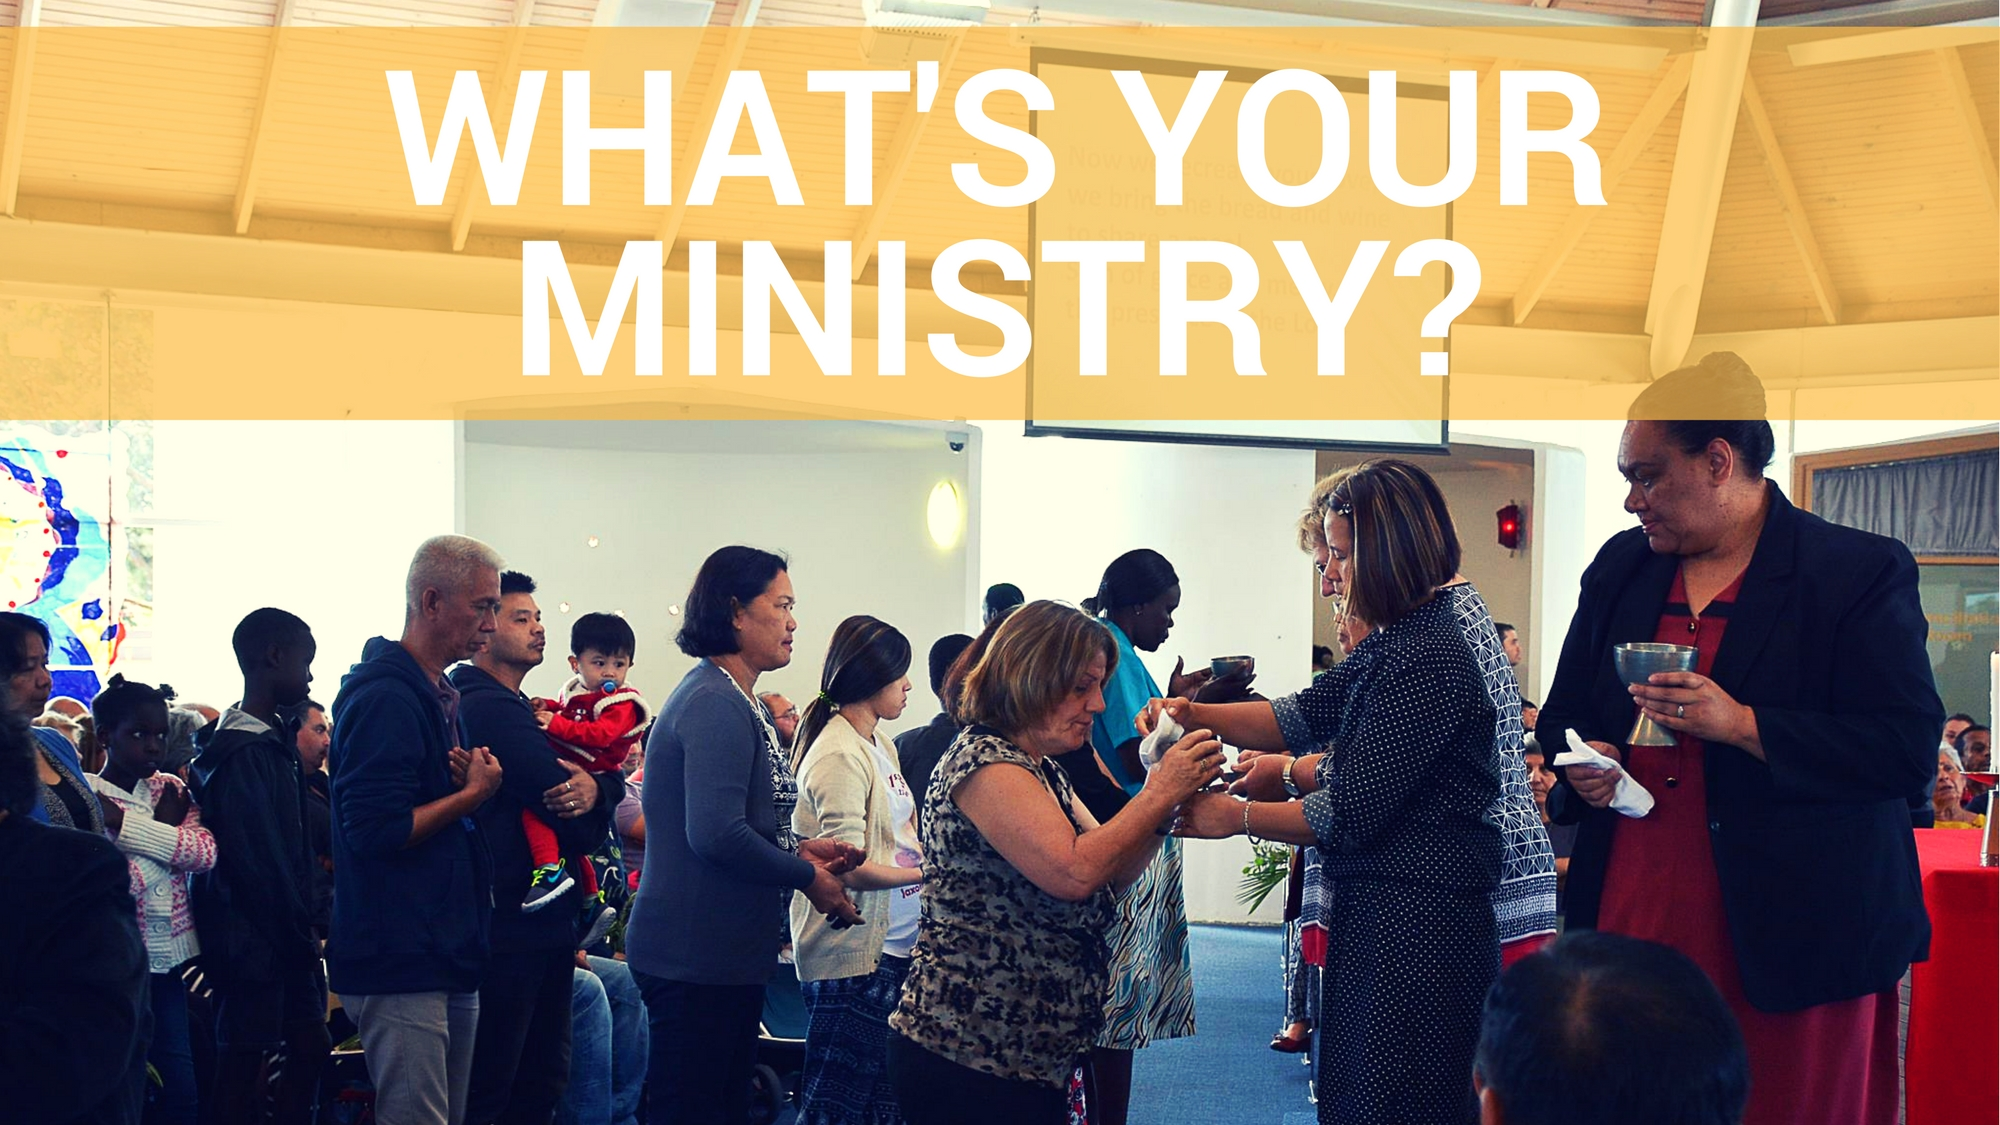 whats-your-ministry